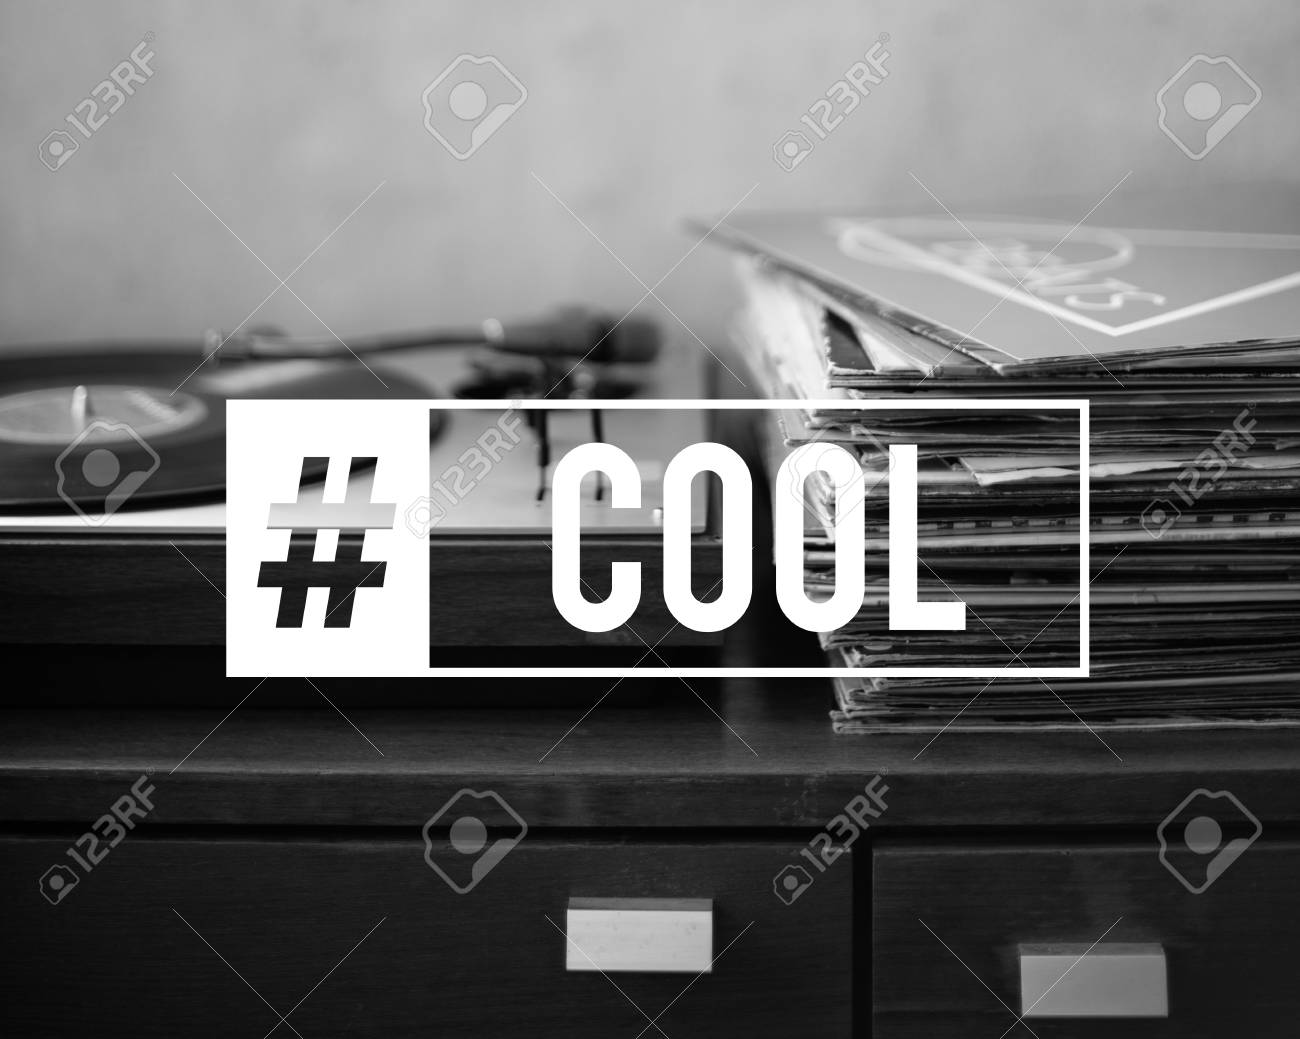 Hashtag awesome fabulous cool word stock photo 76660801